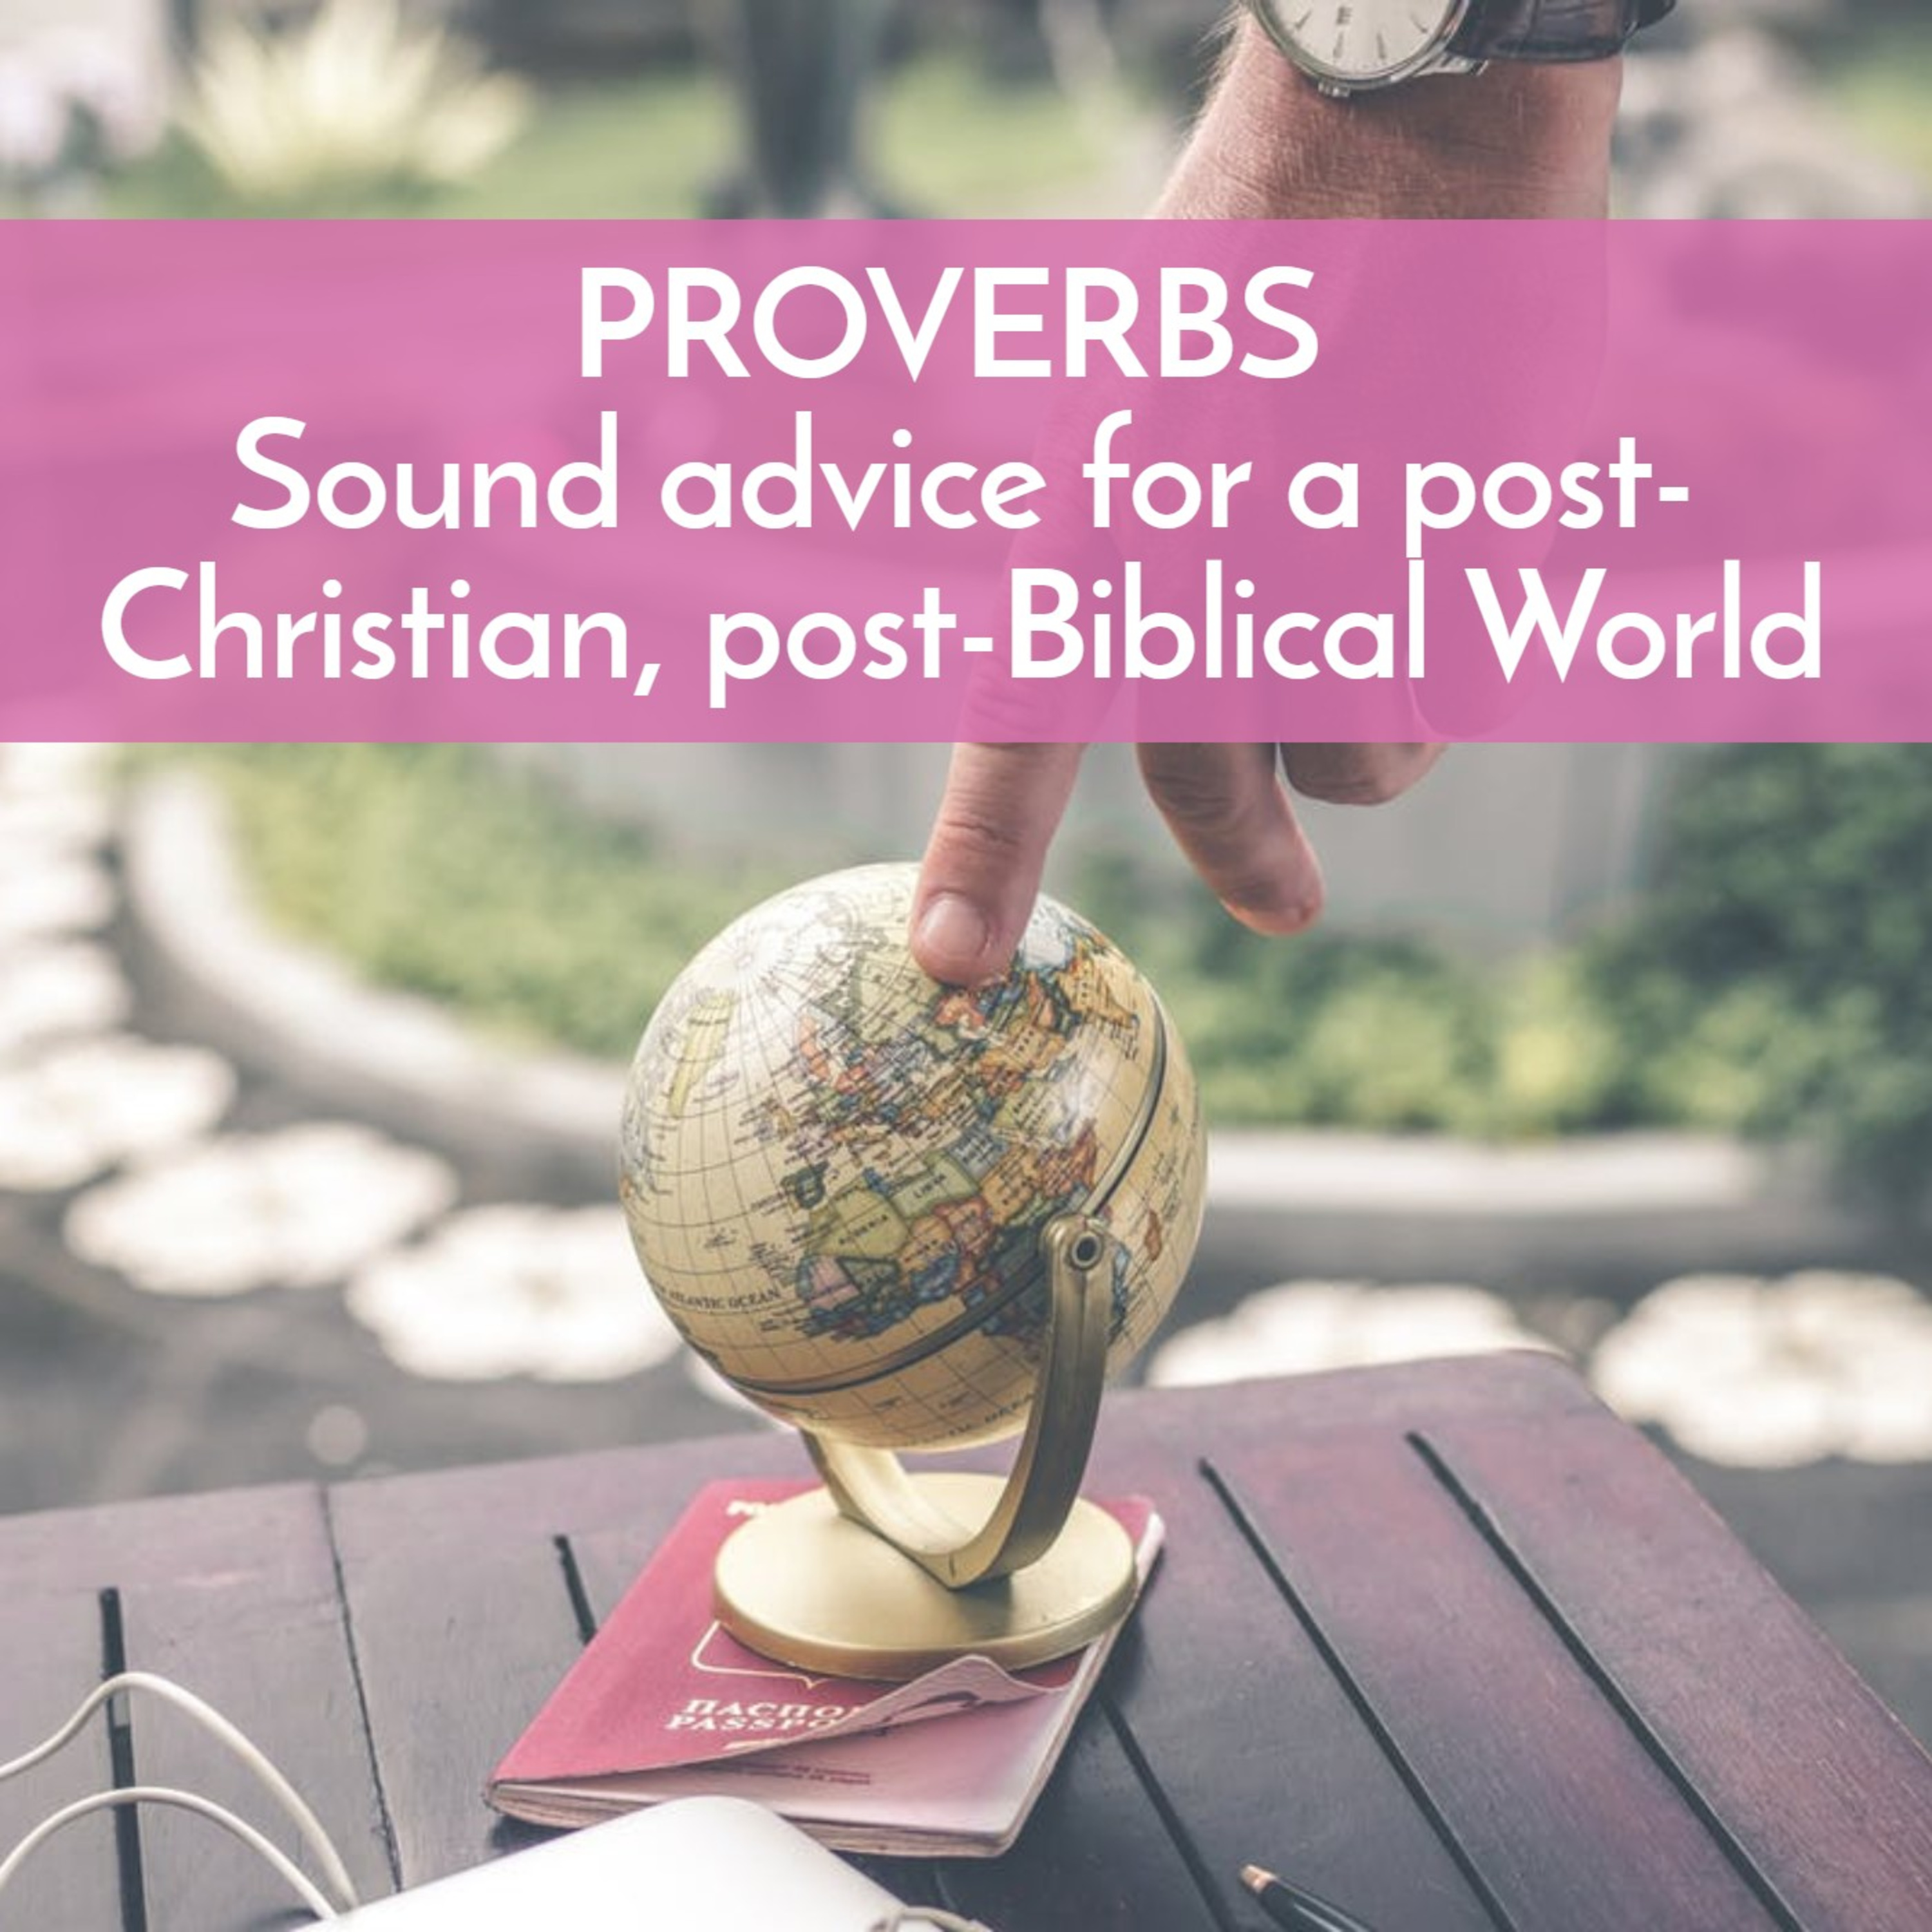 Proverbs, part 2: Practical advice for a post-Christian, post-Biblical world